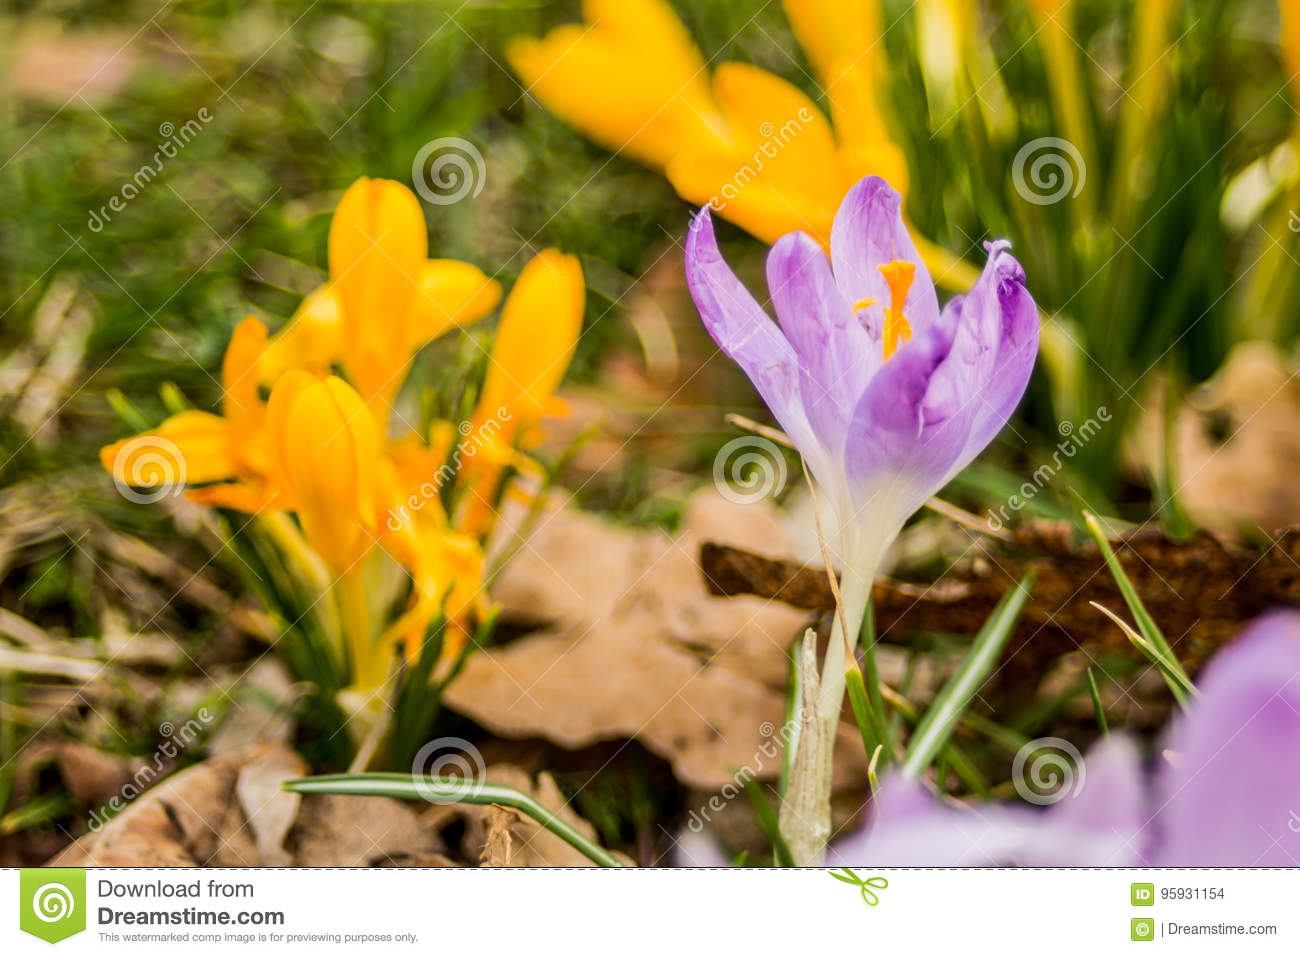 Crocus Plural Crocuses Or Croci Stock Photo Image Of Family